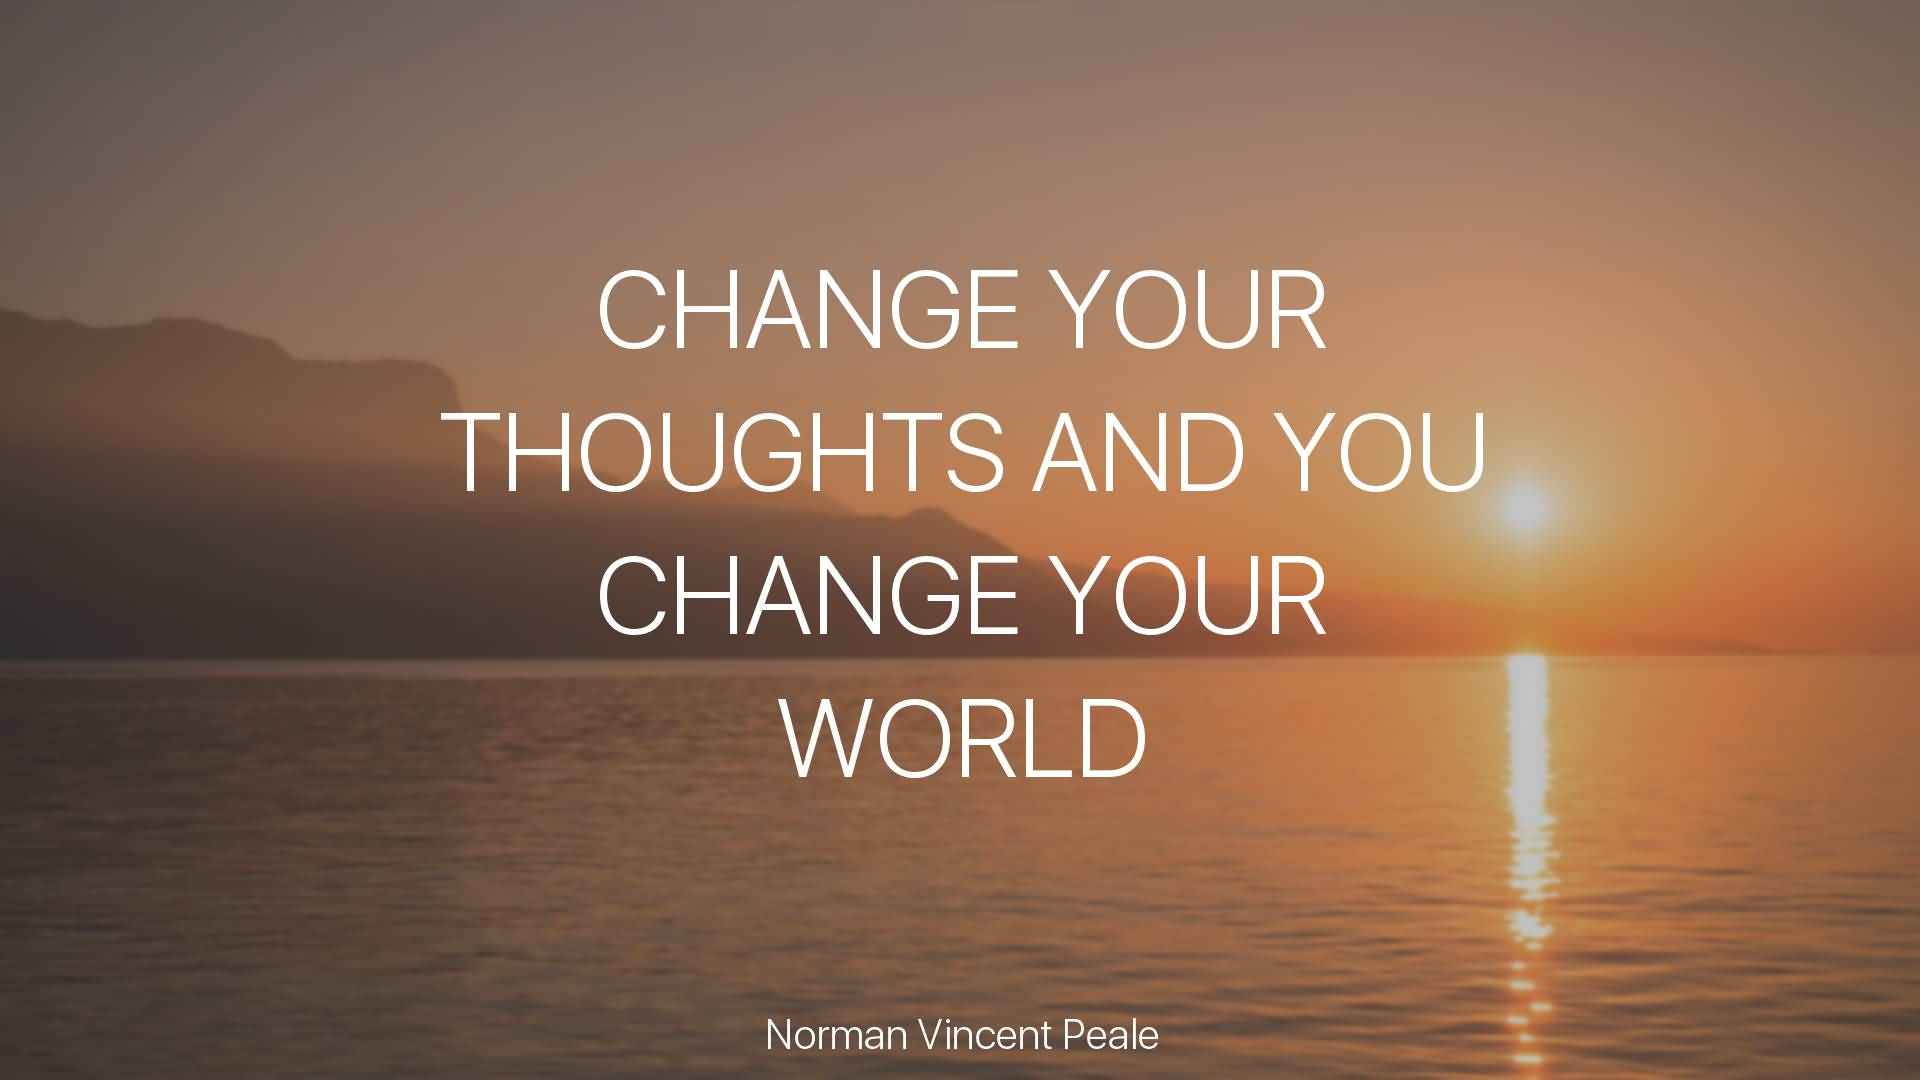 Change-your-thoughts-and-you-change-your-world-Norman-Vircent-Peale